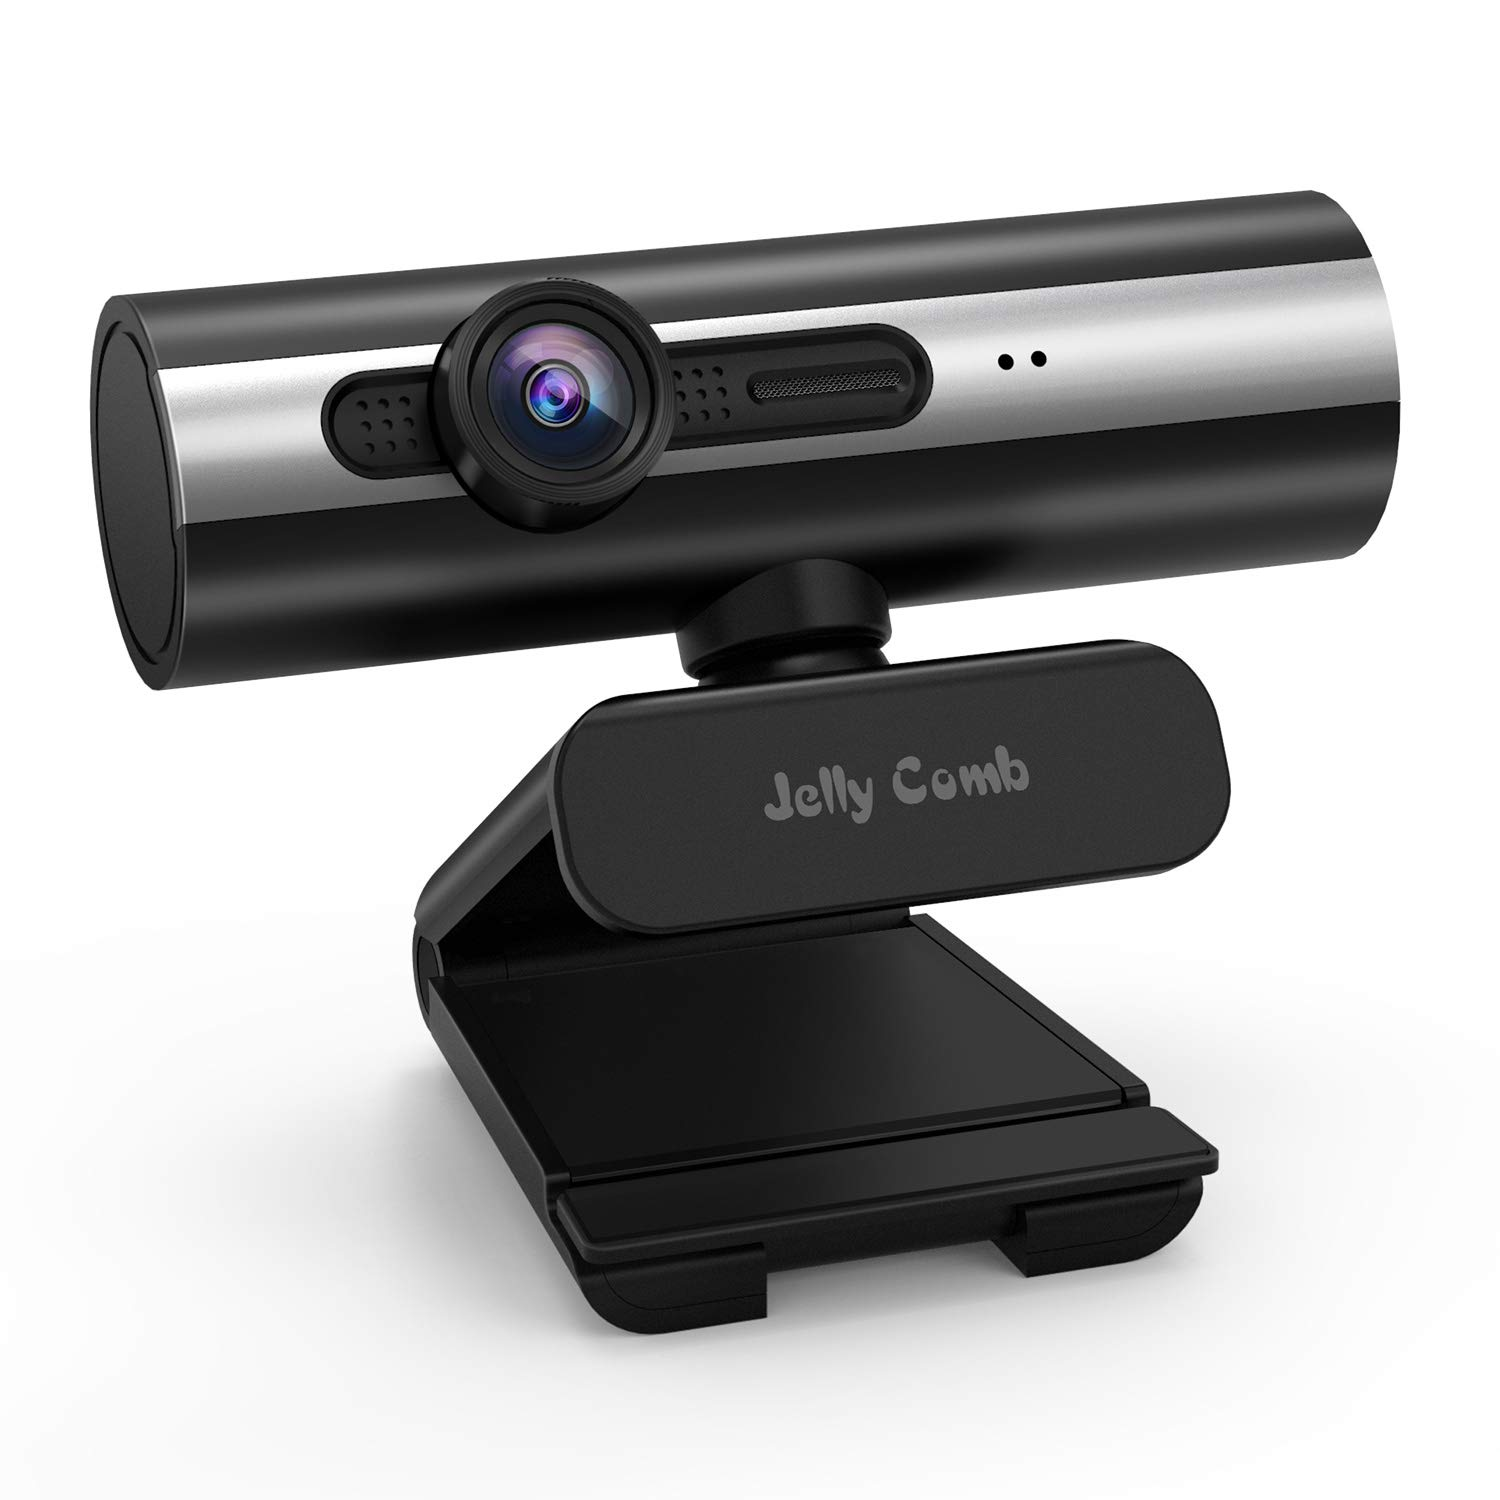 HD Webcam, Jelly Comb 1080p USB Computer Webcam with Built-in Microphone for Video Calling, Conferencing, Streaming - CM001 JC0424